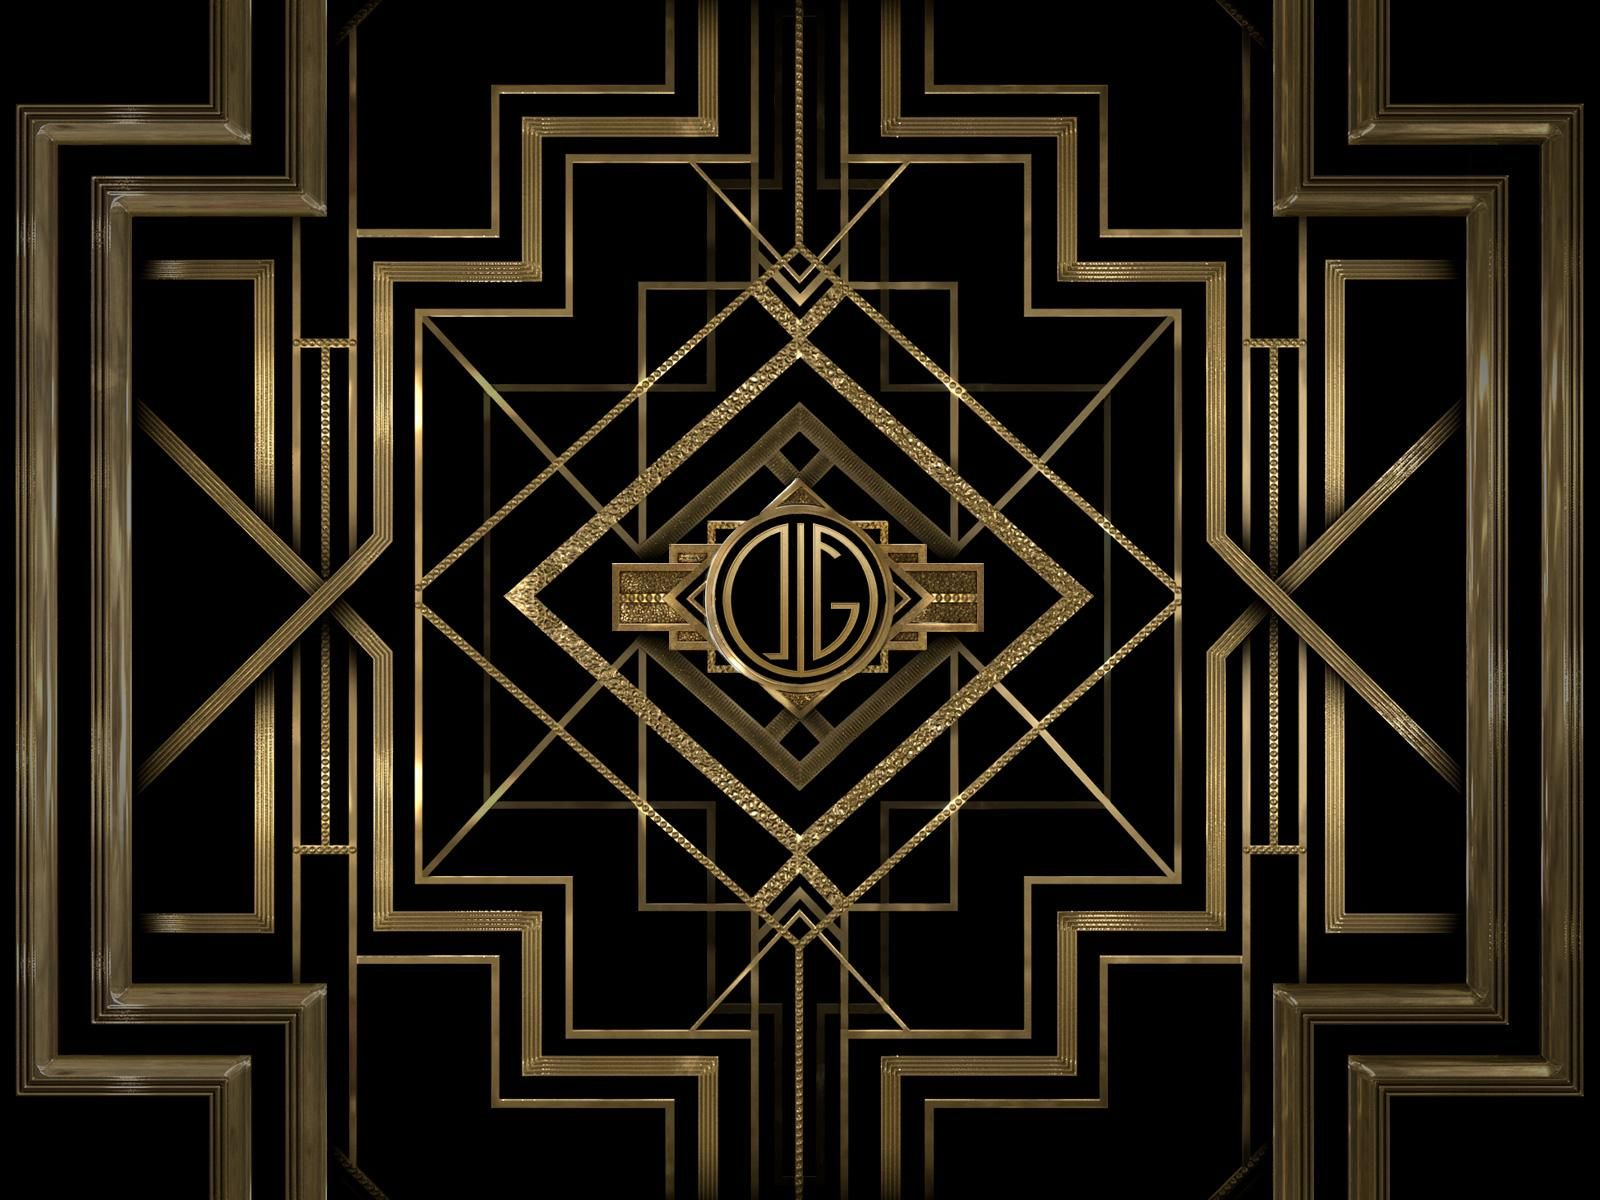 Art deco backdrop for photos wall decor party decoration 1920 s - Find This Pin And More On Art Deco